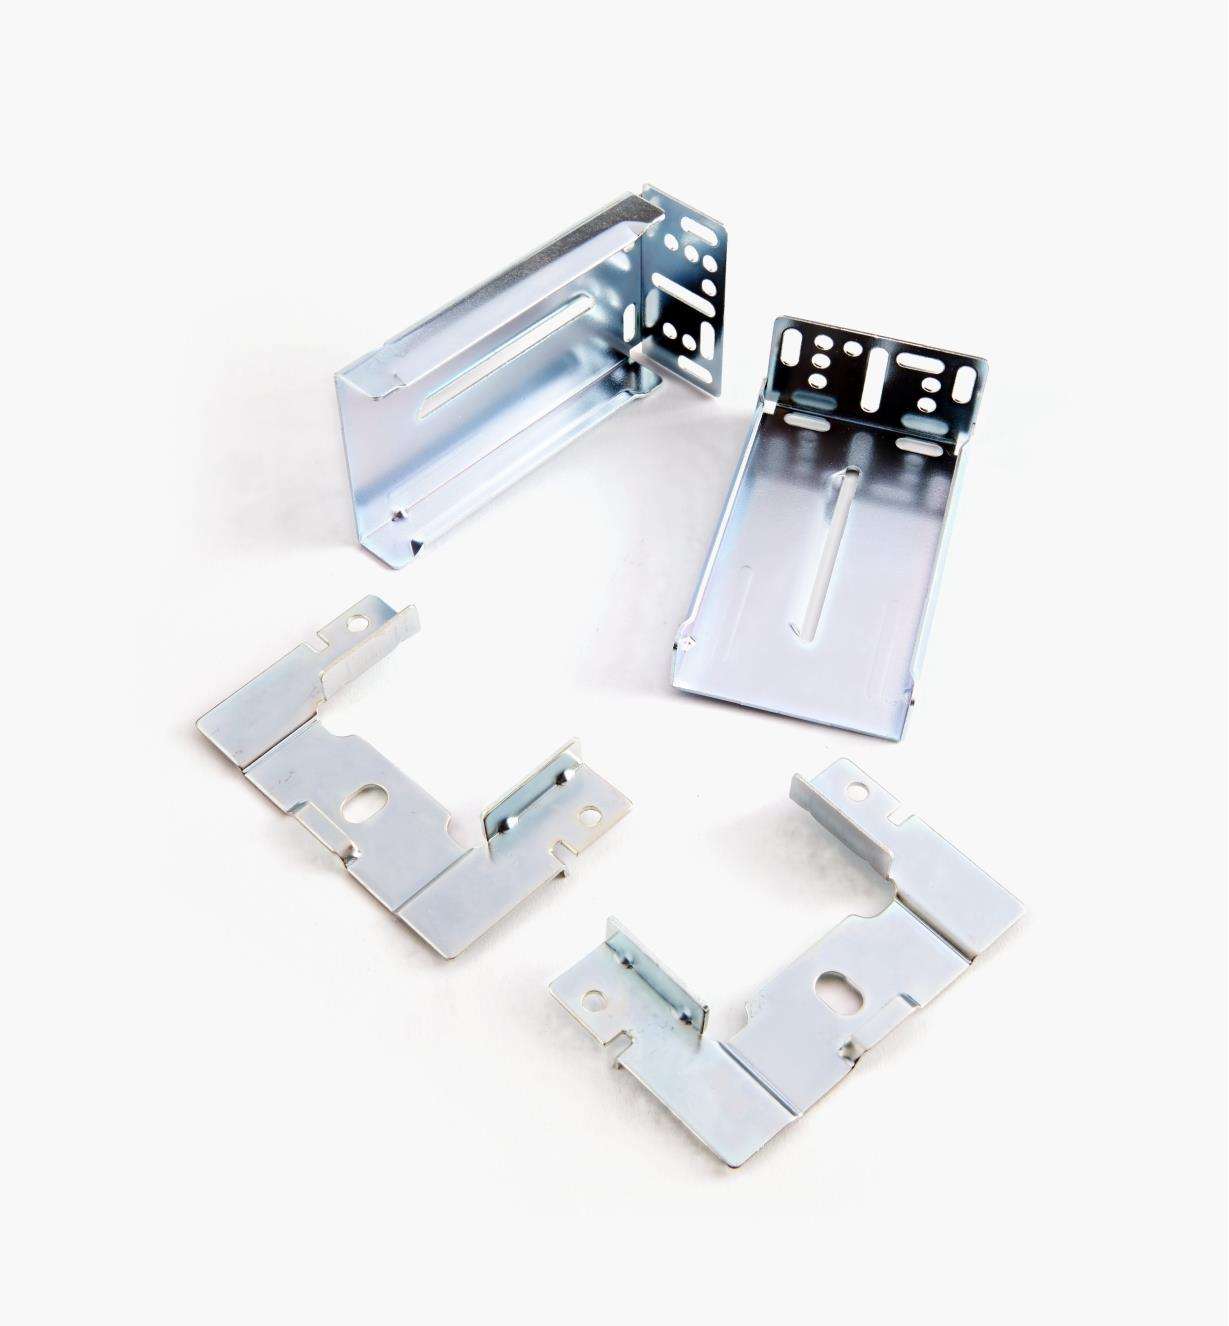 02K3050 - Set of Brackets